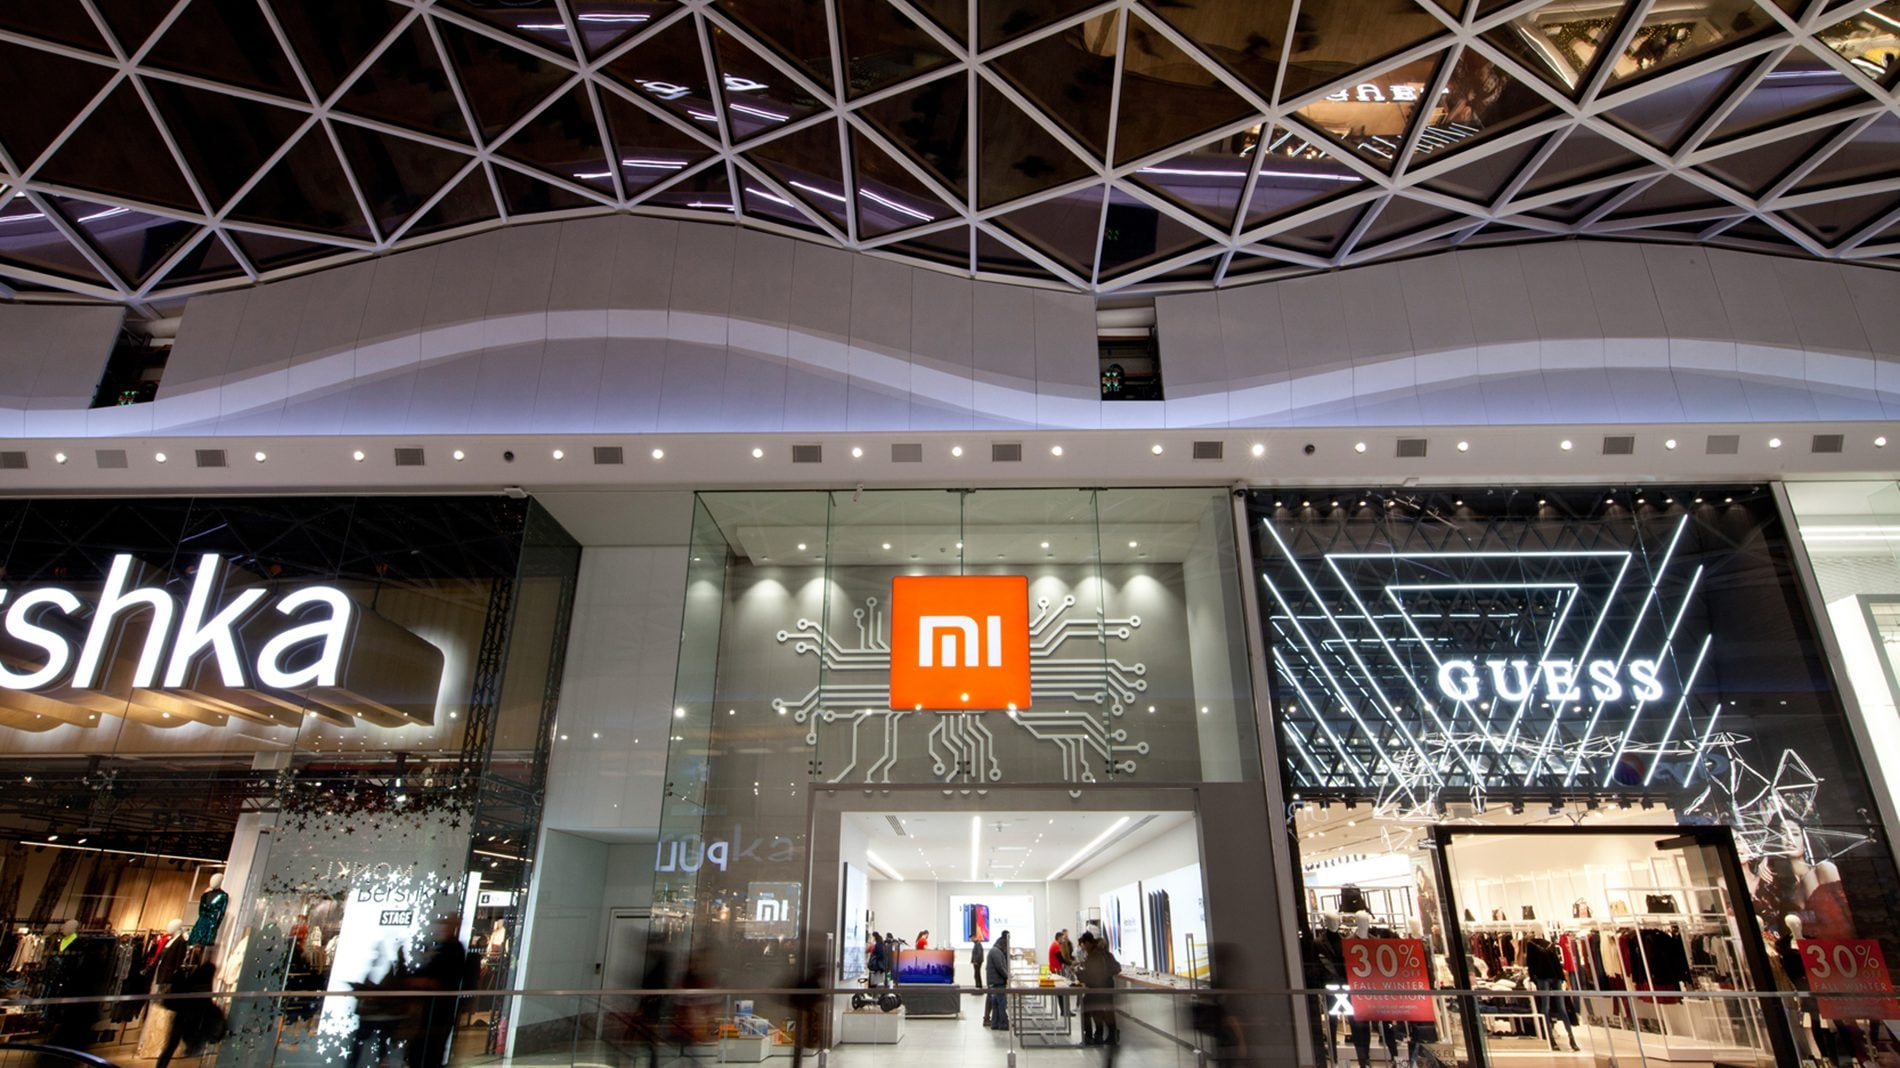 Facade of Xiaomi flagship Mi store and architecture of Westfields London